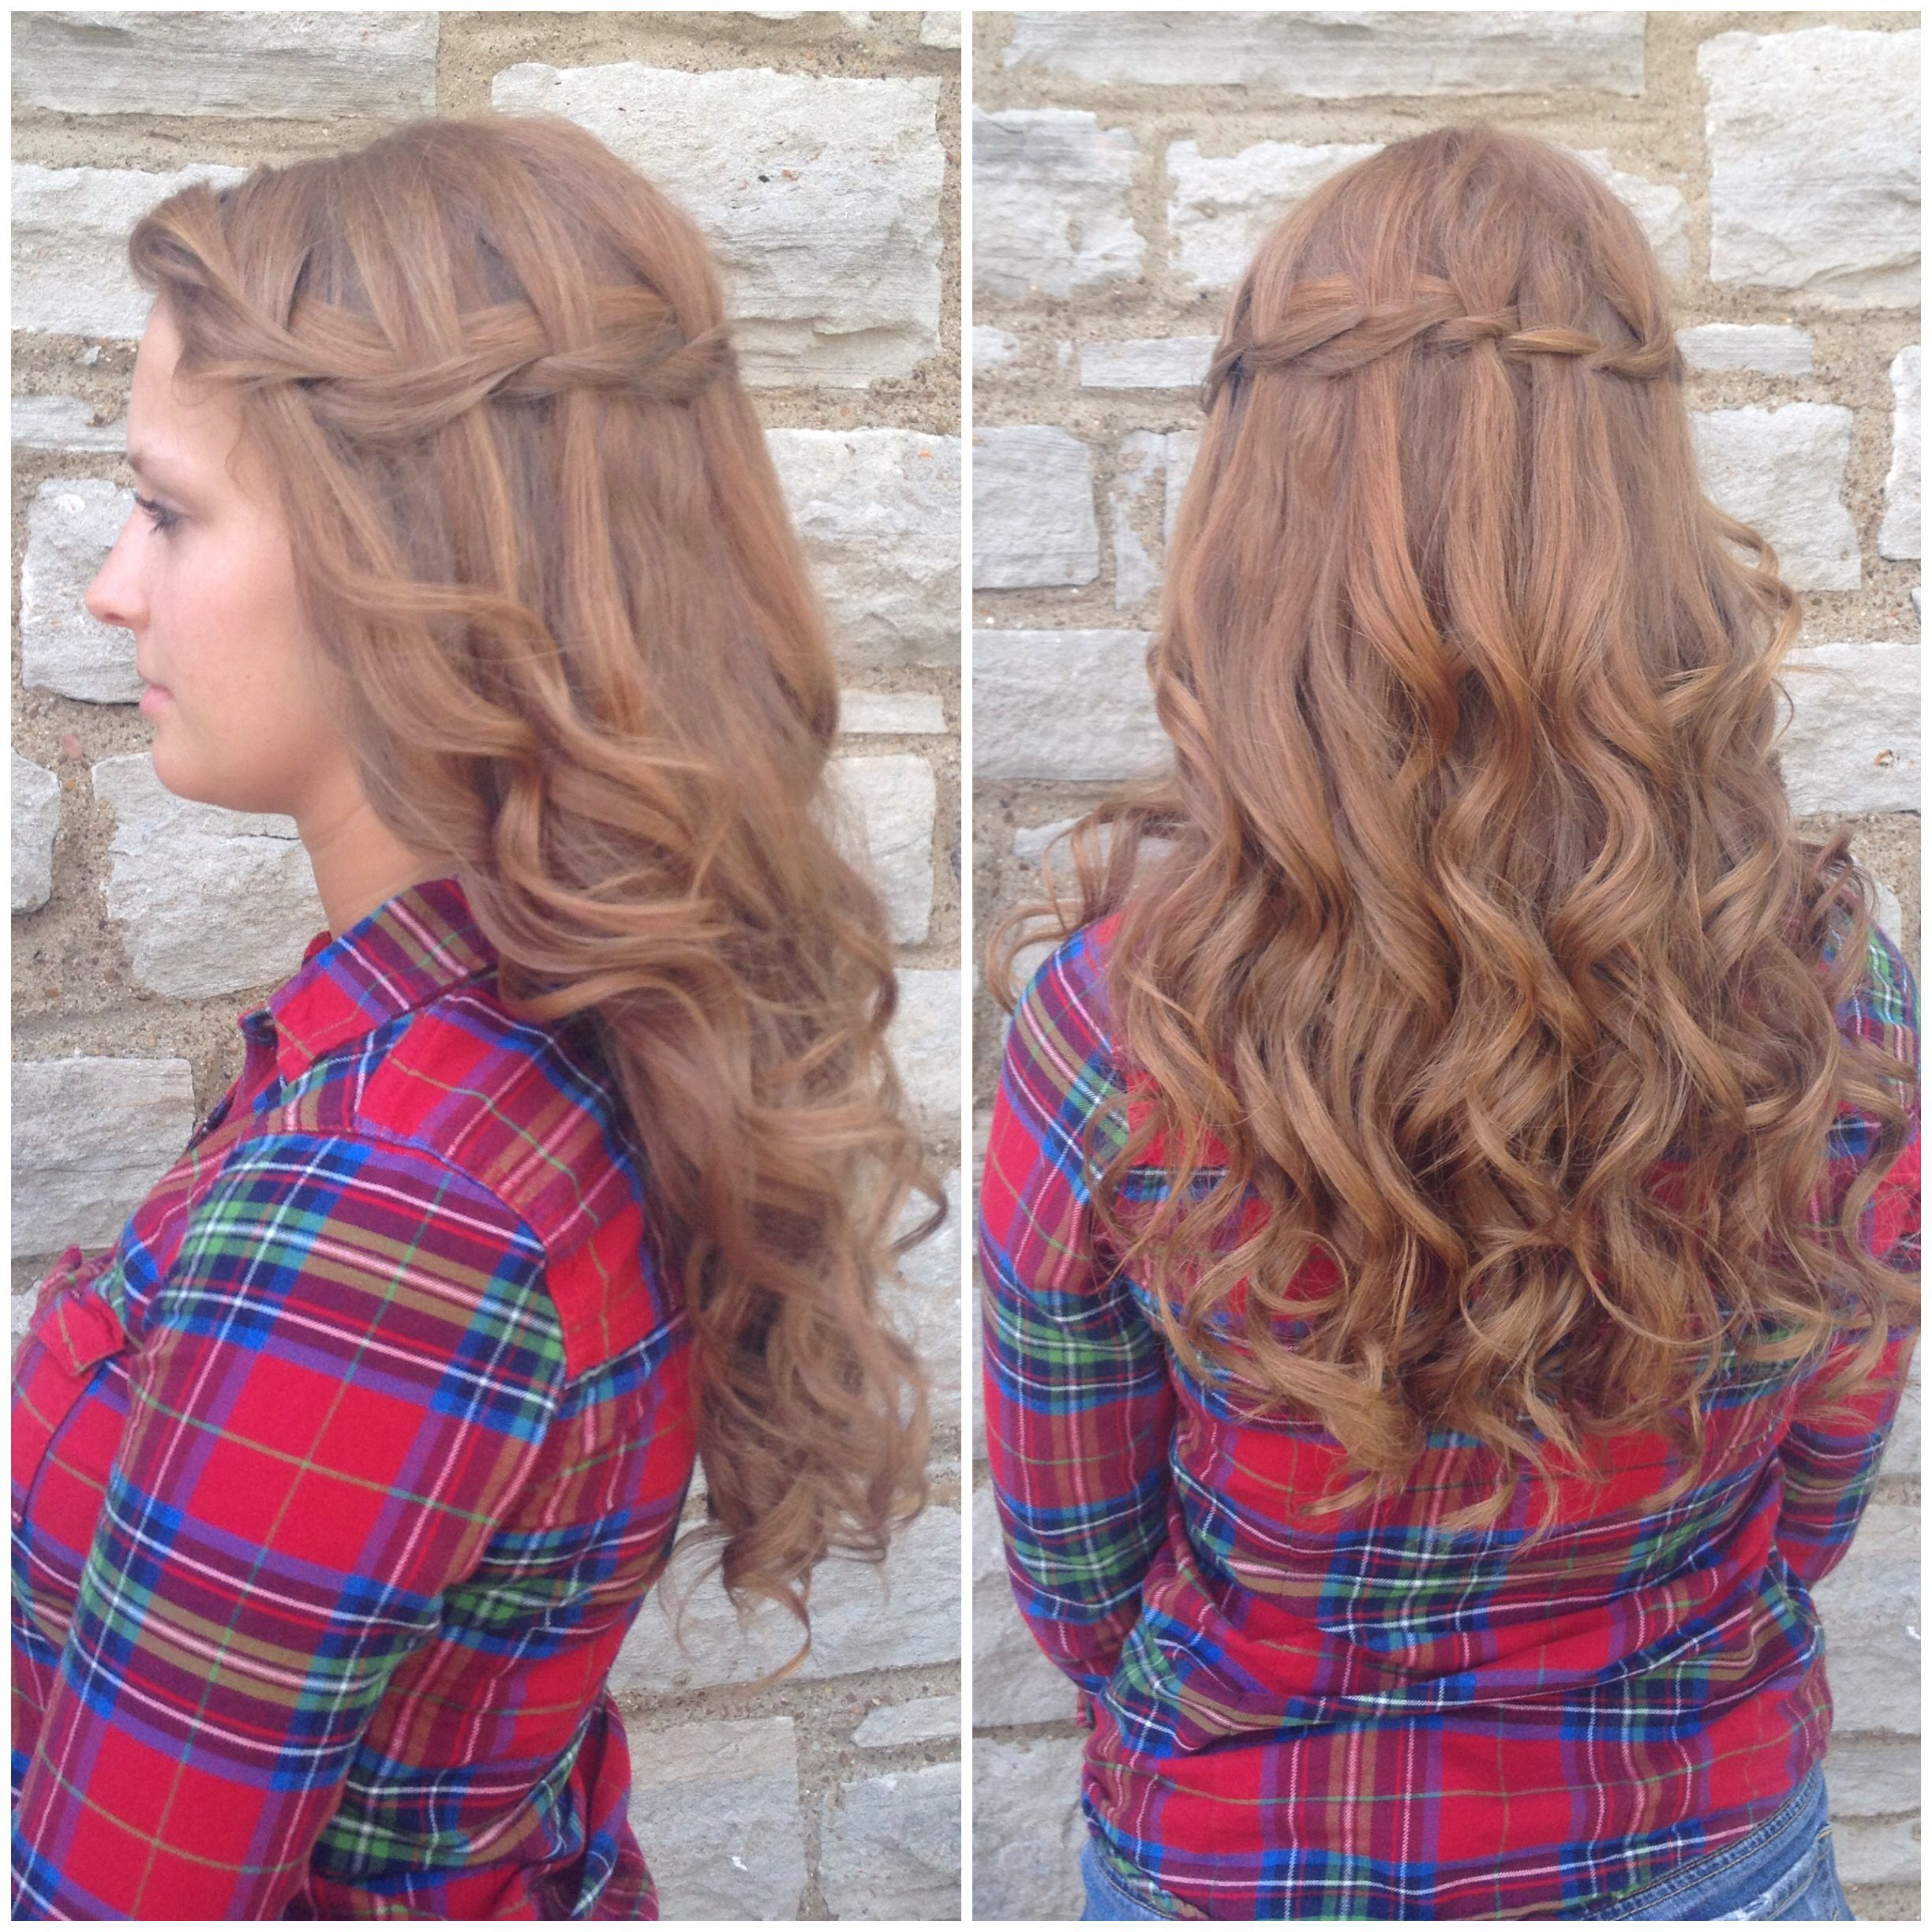 Waterfall braid & curls for prom | Waterfall braid with ...